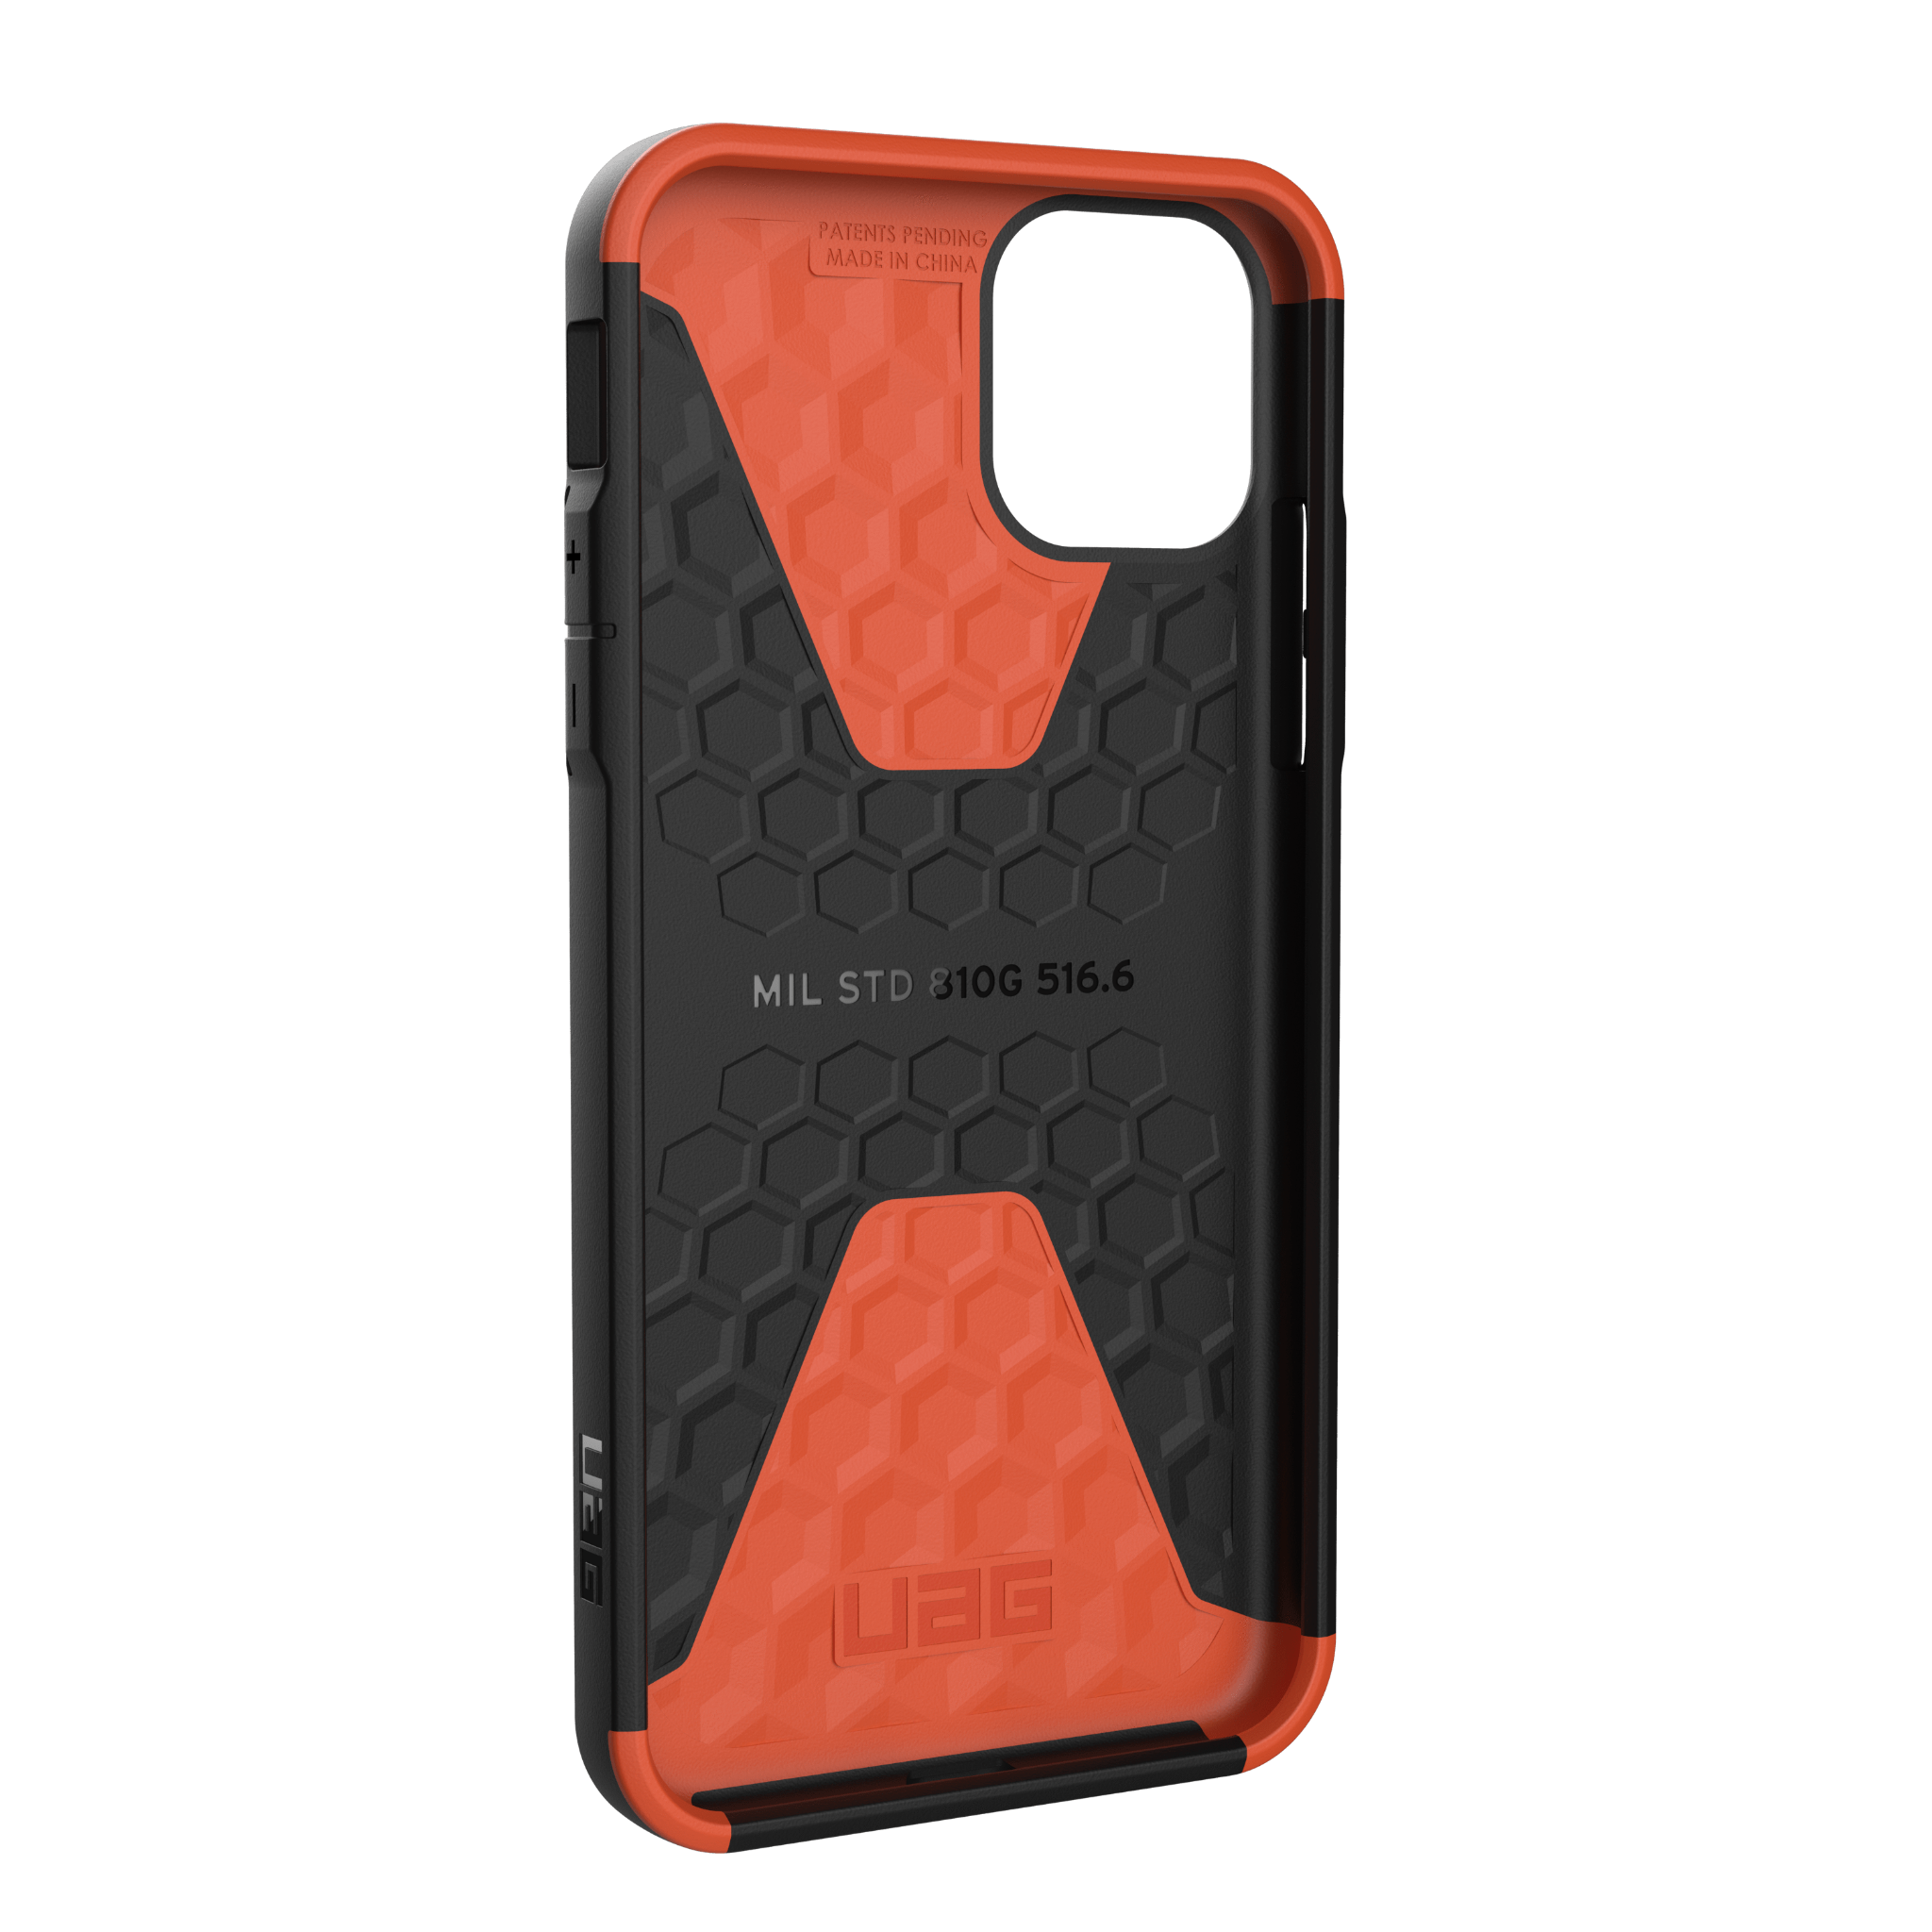 ỐP LƯNG UAG CIVILIAN CHO IPHONE 11 PRO MAX [6.5-INCH] - Slate